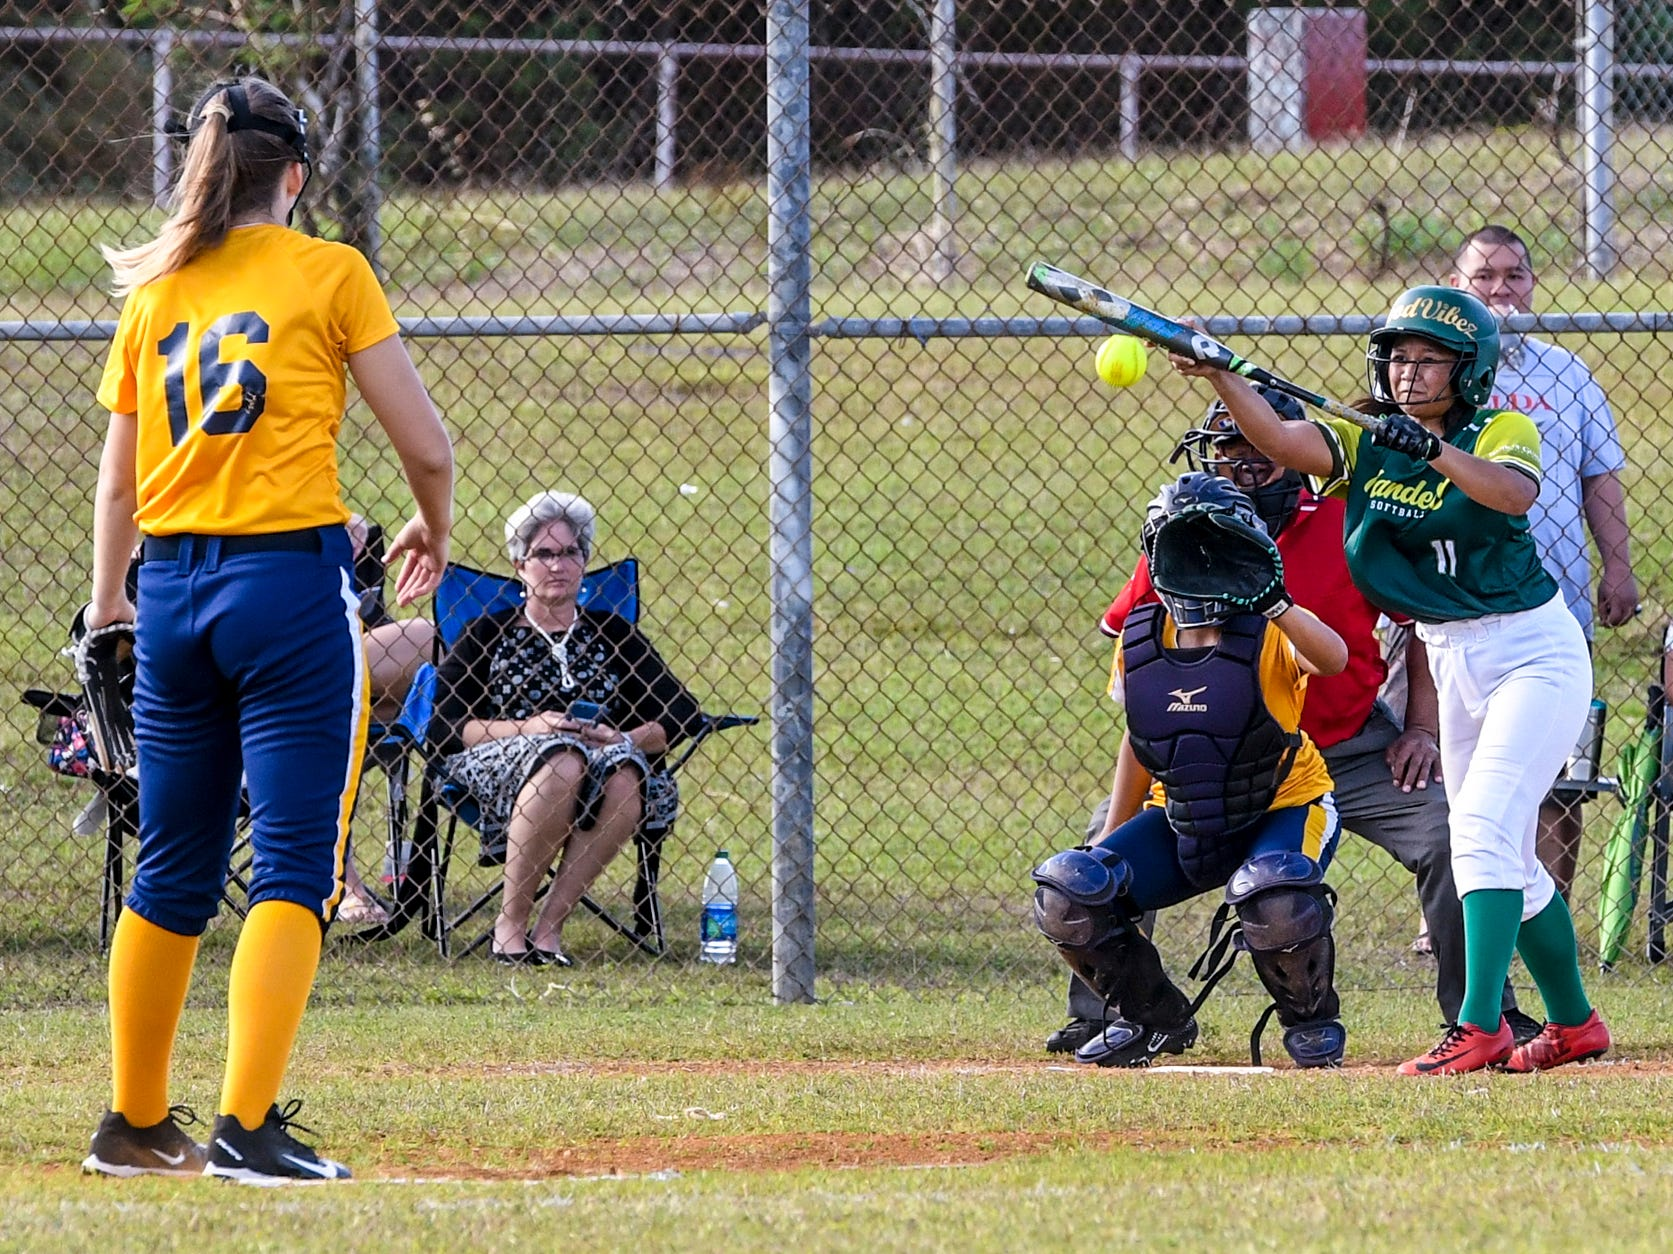 The John F. Kennedy Islanders' pitcher, Emani Gutierrez, opts to bunt a pitch during an IIAAG Girls Softball matchup with the Guam High Panthers at the JFK High School campus in Tamuning on Thursday, Feb. 7, 2019. Unfortunately, Gutierrez was unable to beat the throw to first for a base hit.